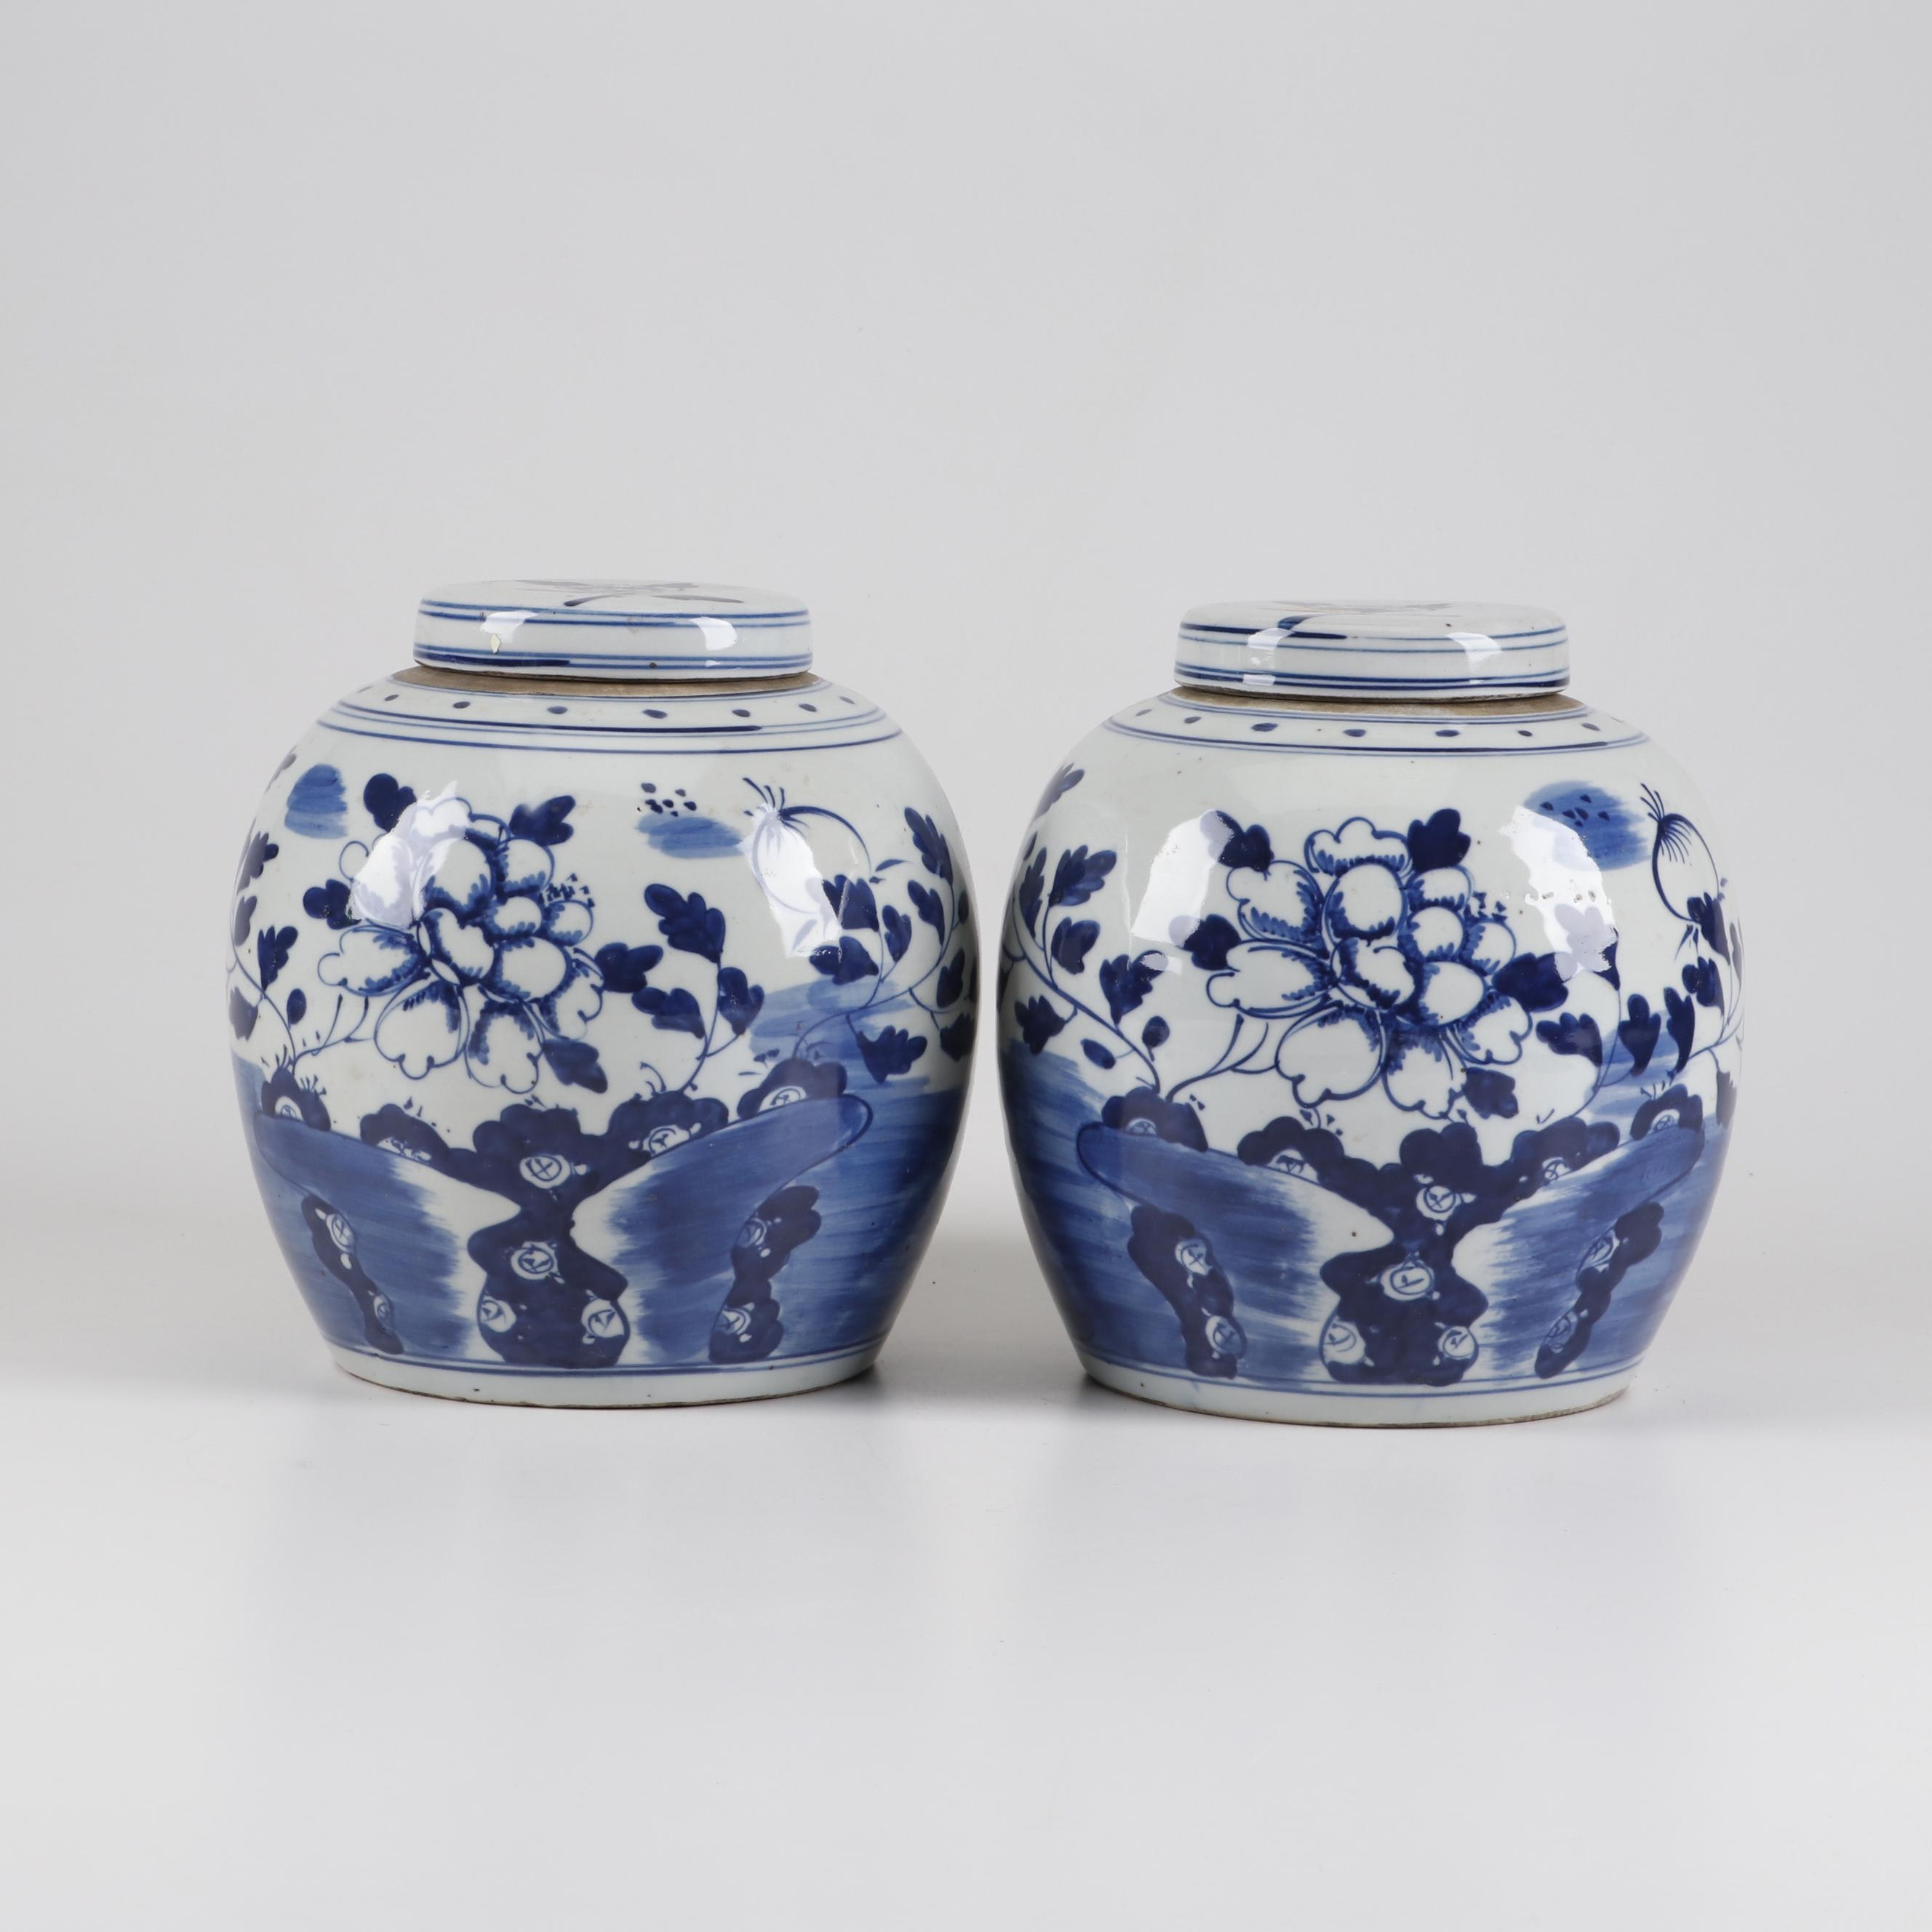 Chinese Blue and White Ceramic Ginger Jars